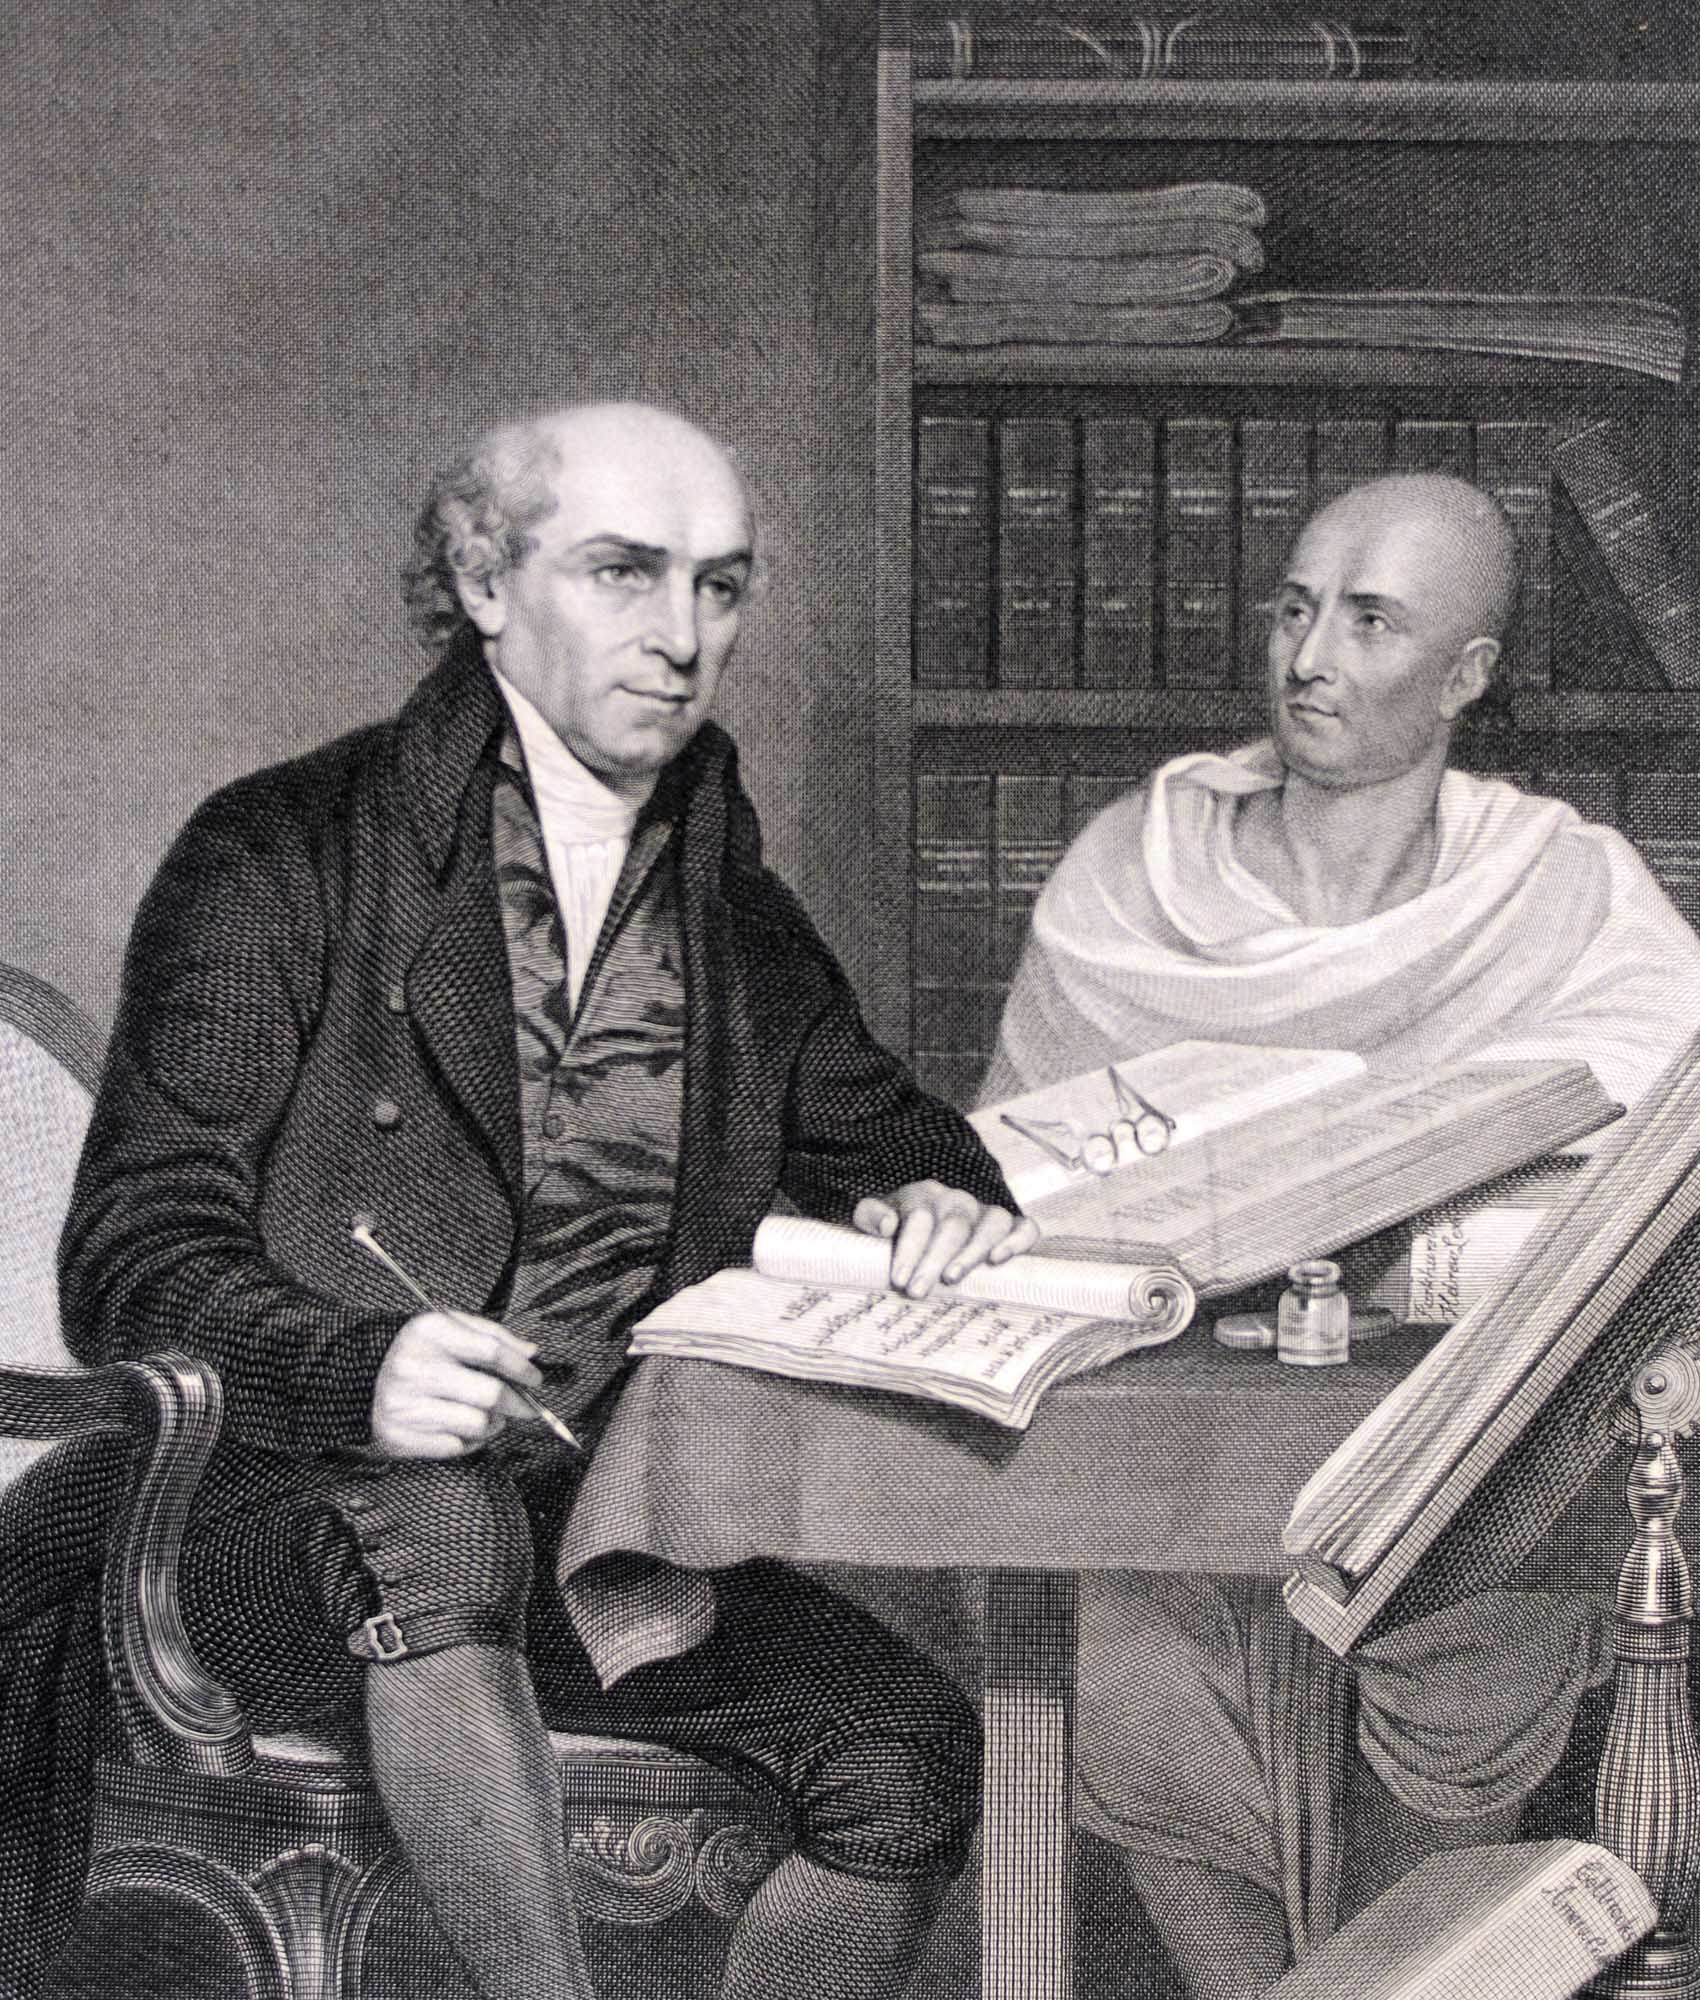 A print showing William Carey with his Indian translator at The College of Fort William, Calcutta, 1813 -